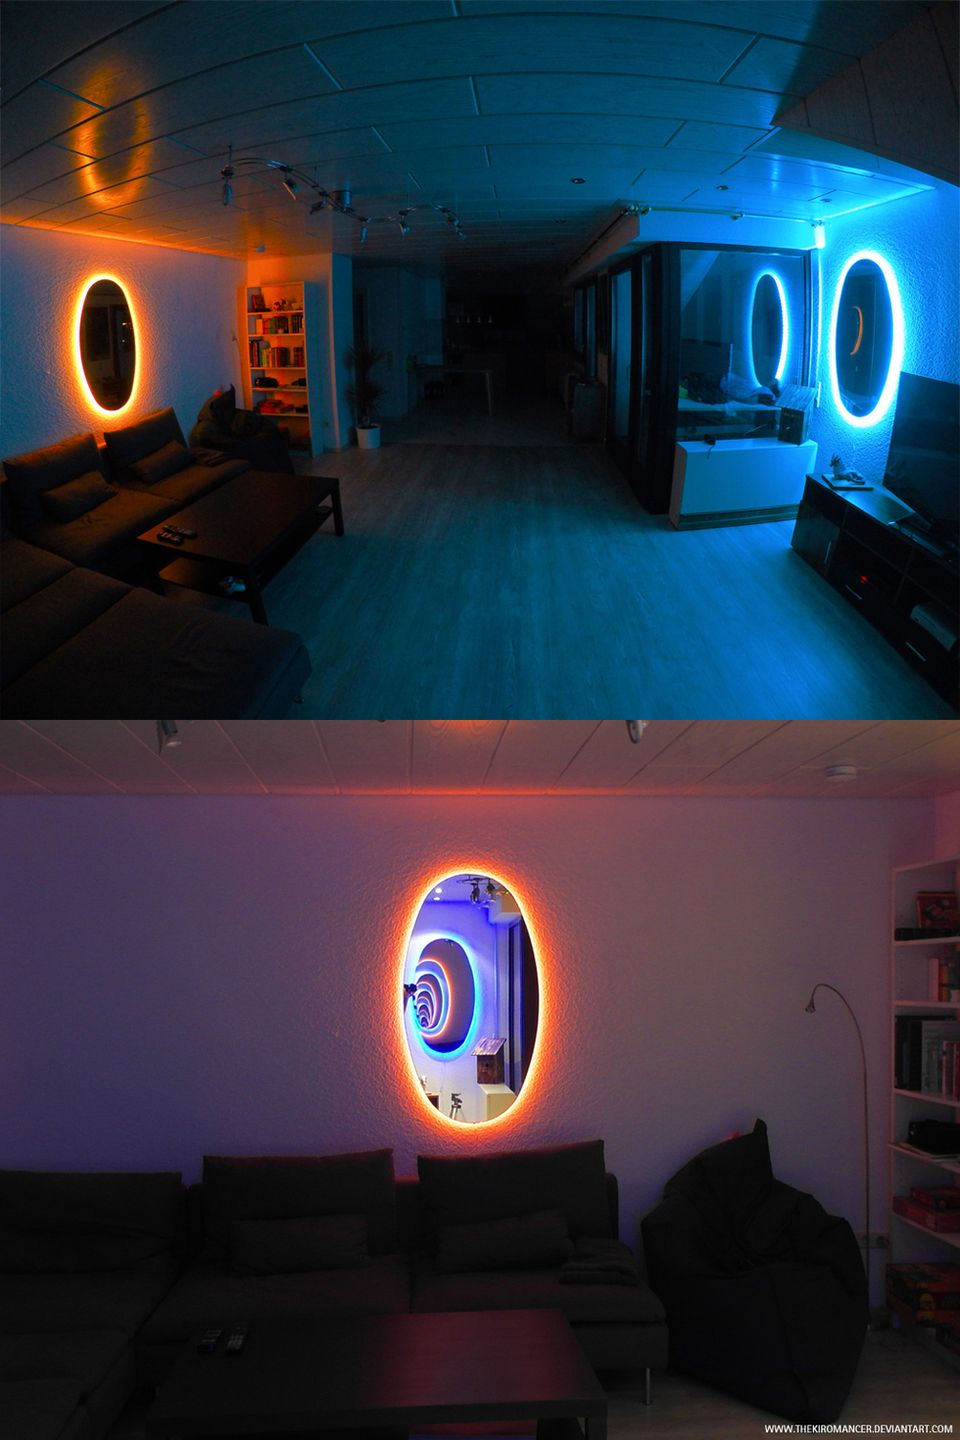 Portal Mirrors In 2019 Infinity Tunnels Pinterest Room Telephone Line Wiring Group Picture Image By Tag Keywordpictures Adequate For Our Fun Game And Entertainment Design Gallery Where We Feature Hundreds Of Ideas Every Styles Sizes Features Locations